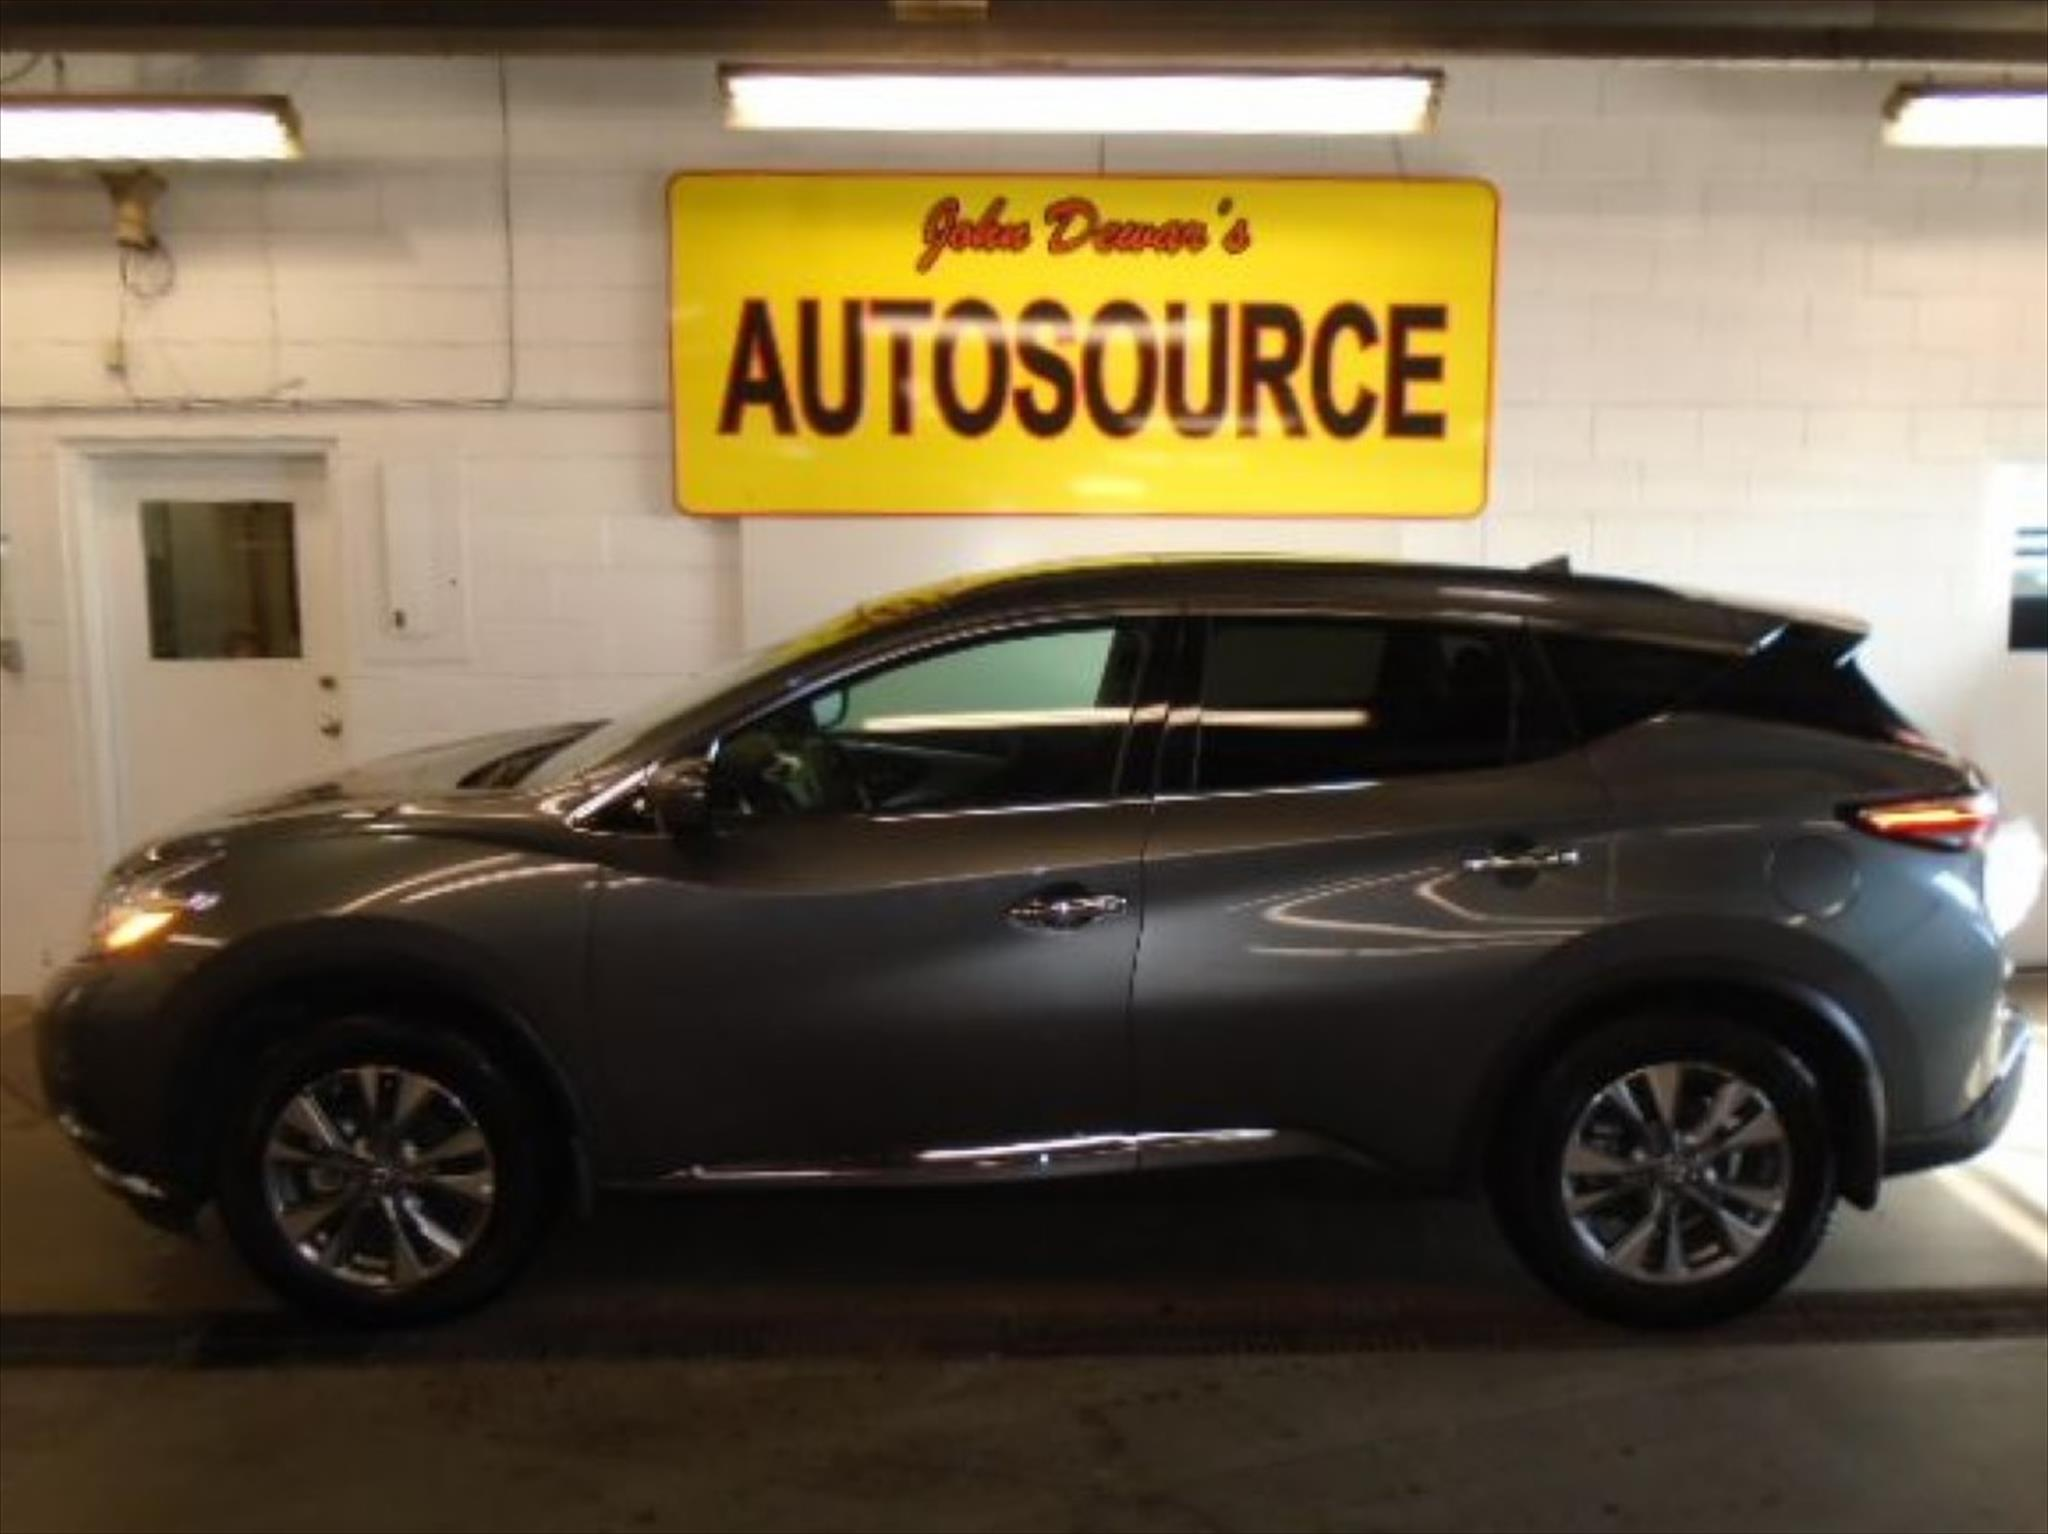 used 2016 nissan murano sv for sale in peterborough on by john dewar 39 s autosource. Black Bedroom Furniture Sets. Home Design Ideas